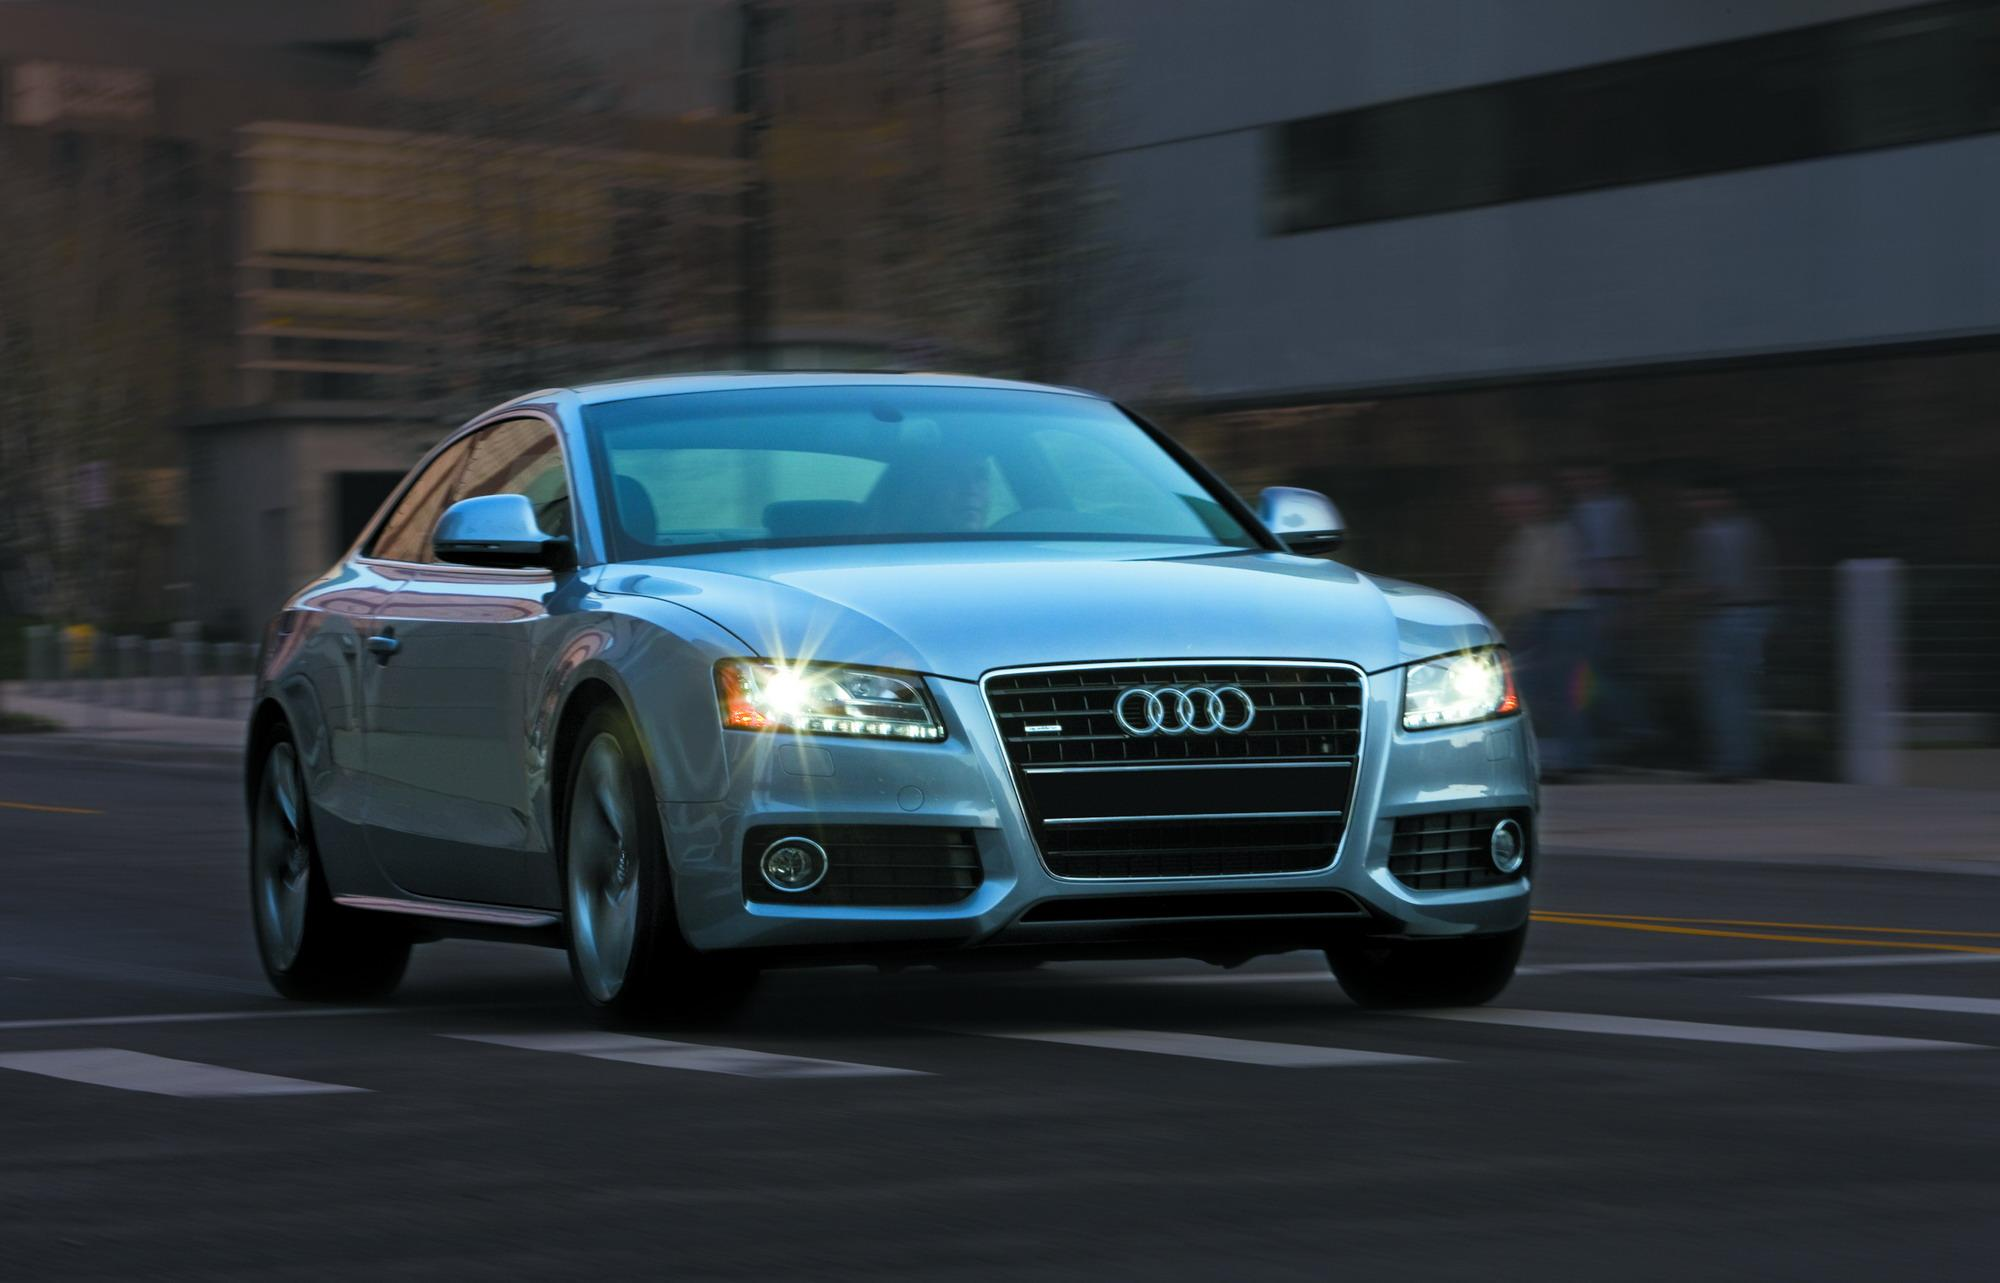 2010 audi a5 review top speed. Black Bedroom Furniture Sets. Home Design Ideas